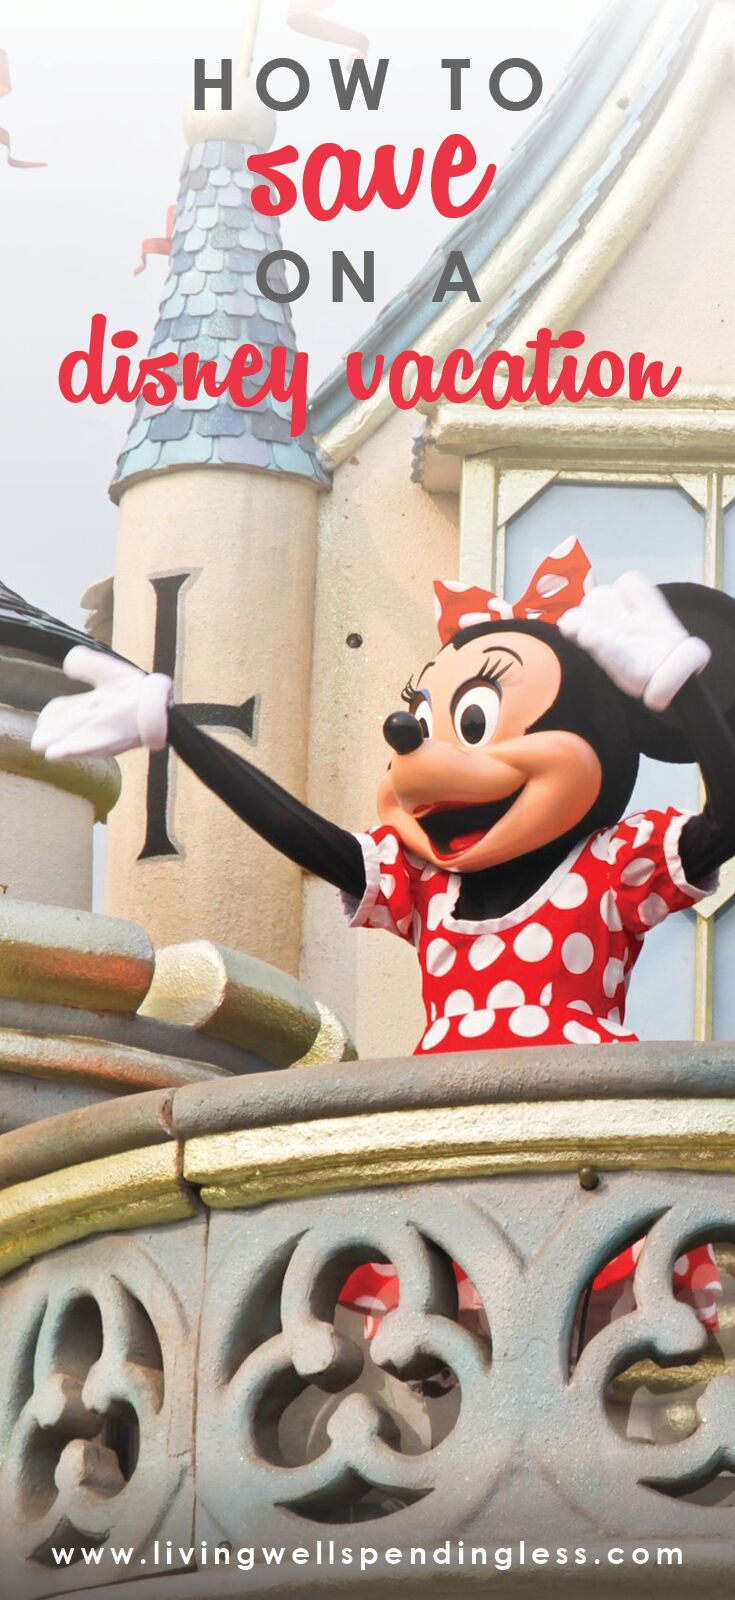 How to Save on a Disney Vacation | Smart Ways to Save on a Disney Vacation | Disney World on the Cheap | Doing Disney Vacations the Smart Way | Saving Tactics for Disney World | Disney on a Budget